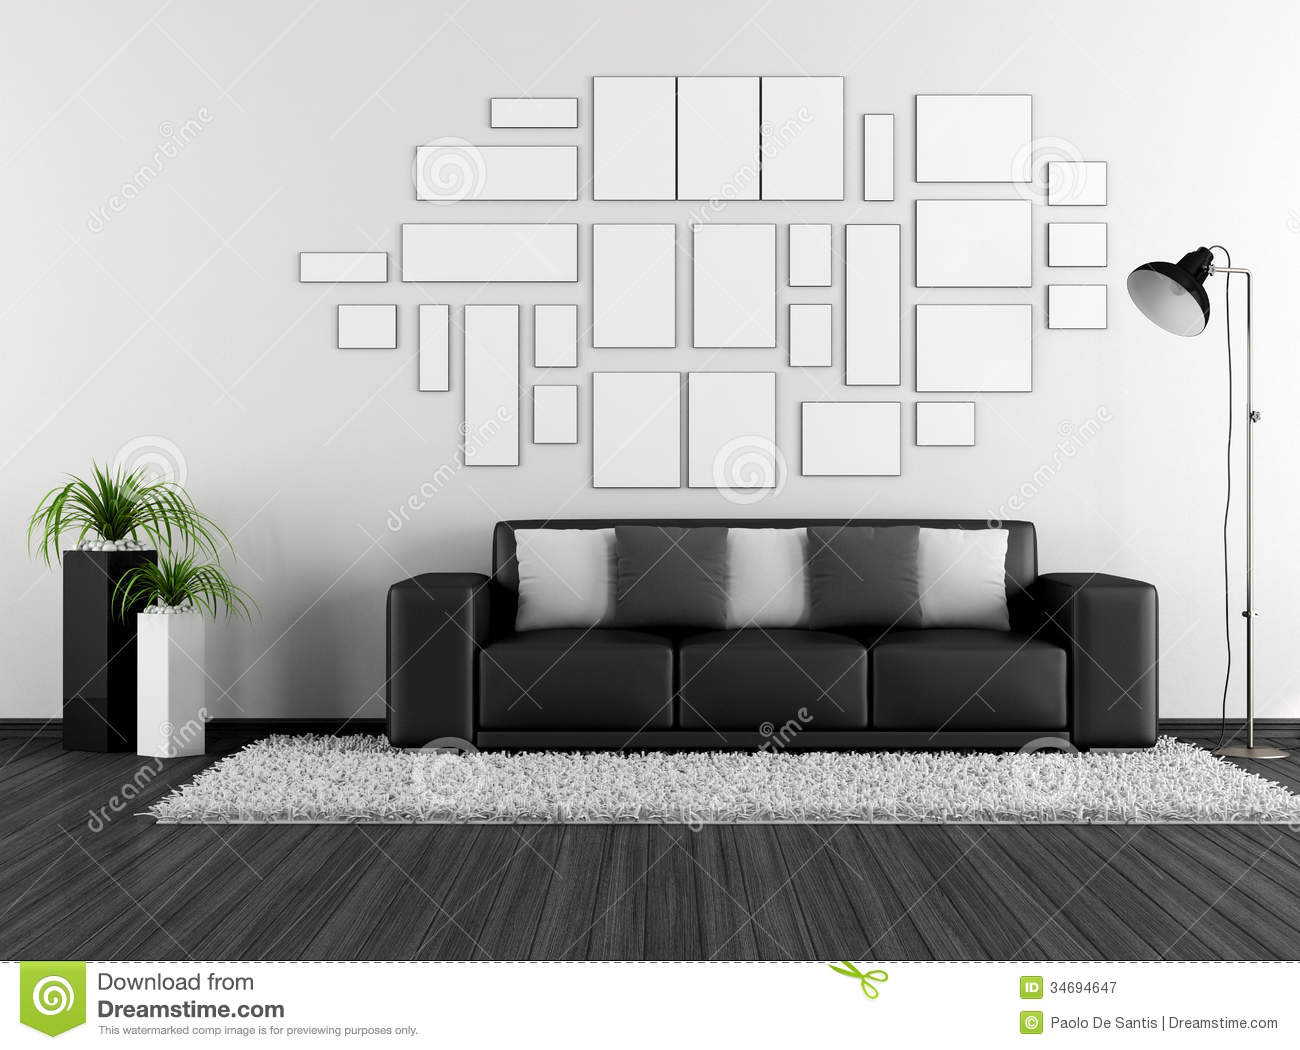 black and white living room with modern couch and empty frame stock illustration illustration. Black Bedroom Furniture Sets. Home Design Ideas